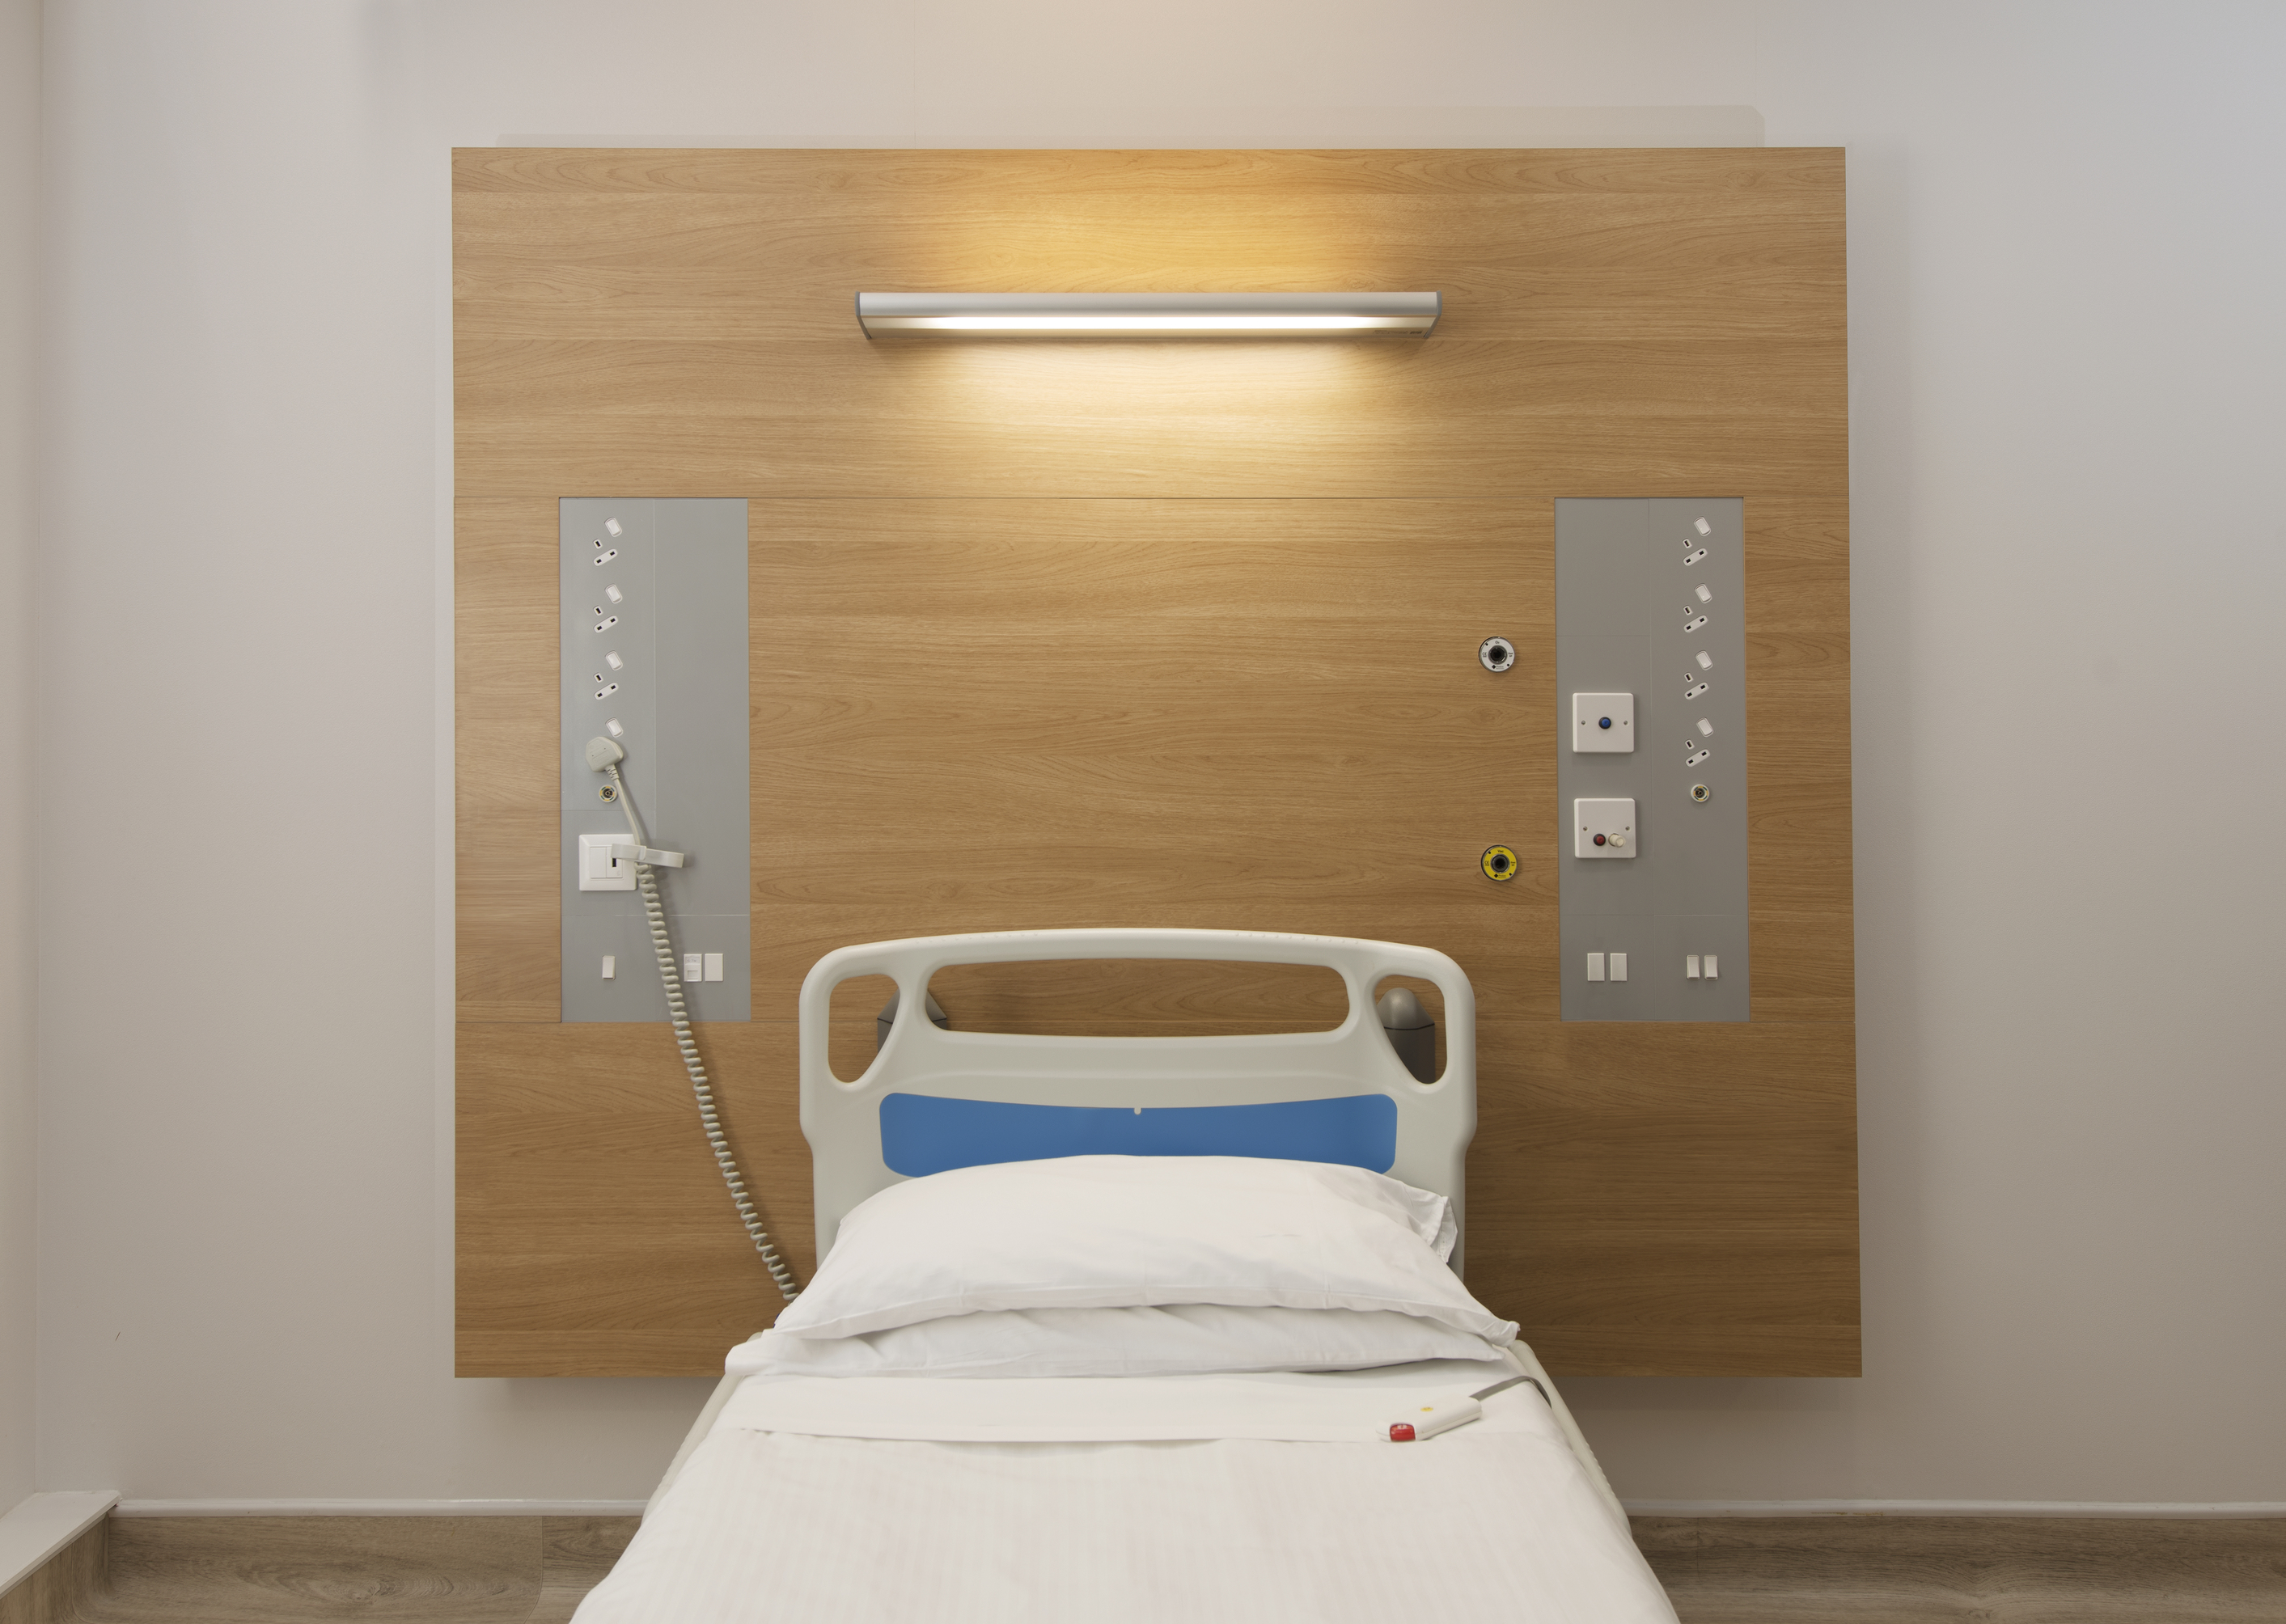 Ambience LED Overbed Lighting 2